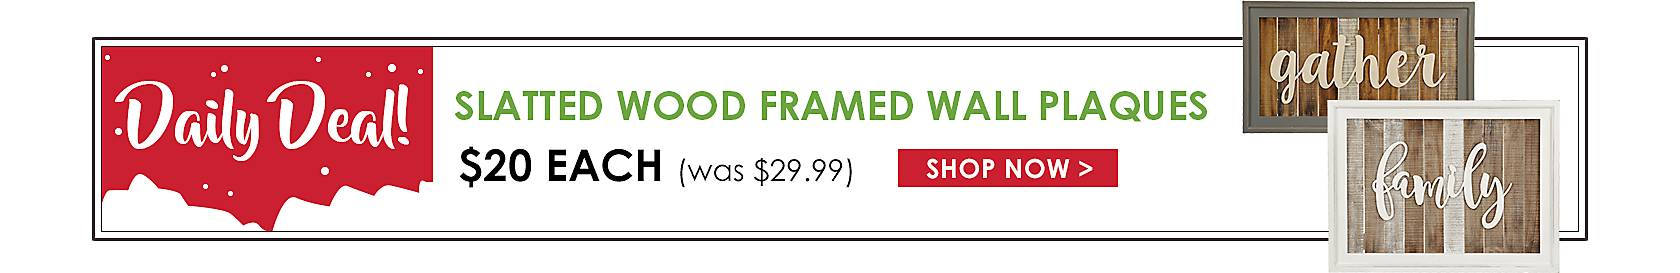 Daily Deal - Slatted Wood Framed Wall Plaques Now $20 - Shop Now